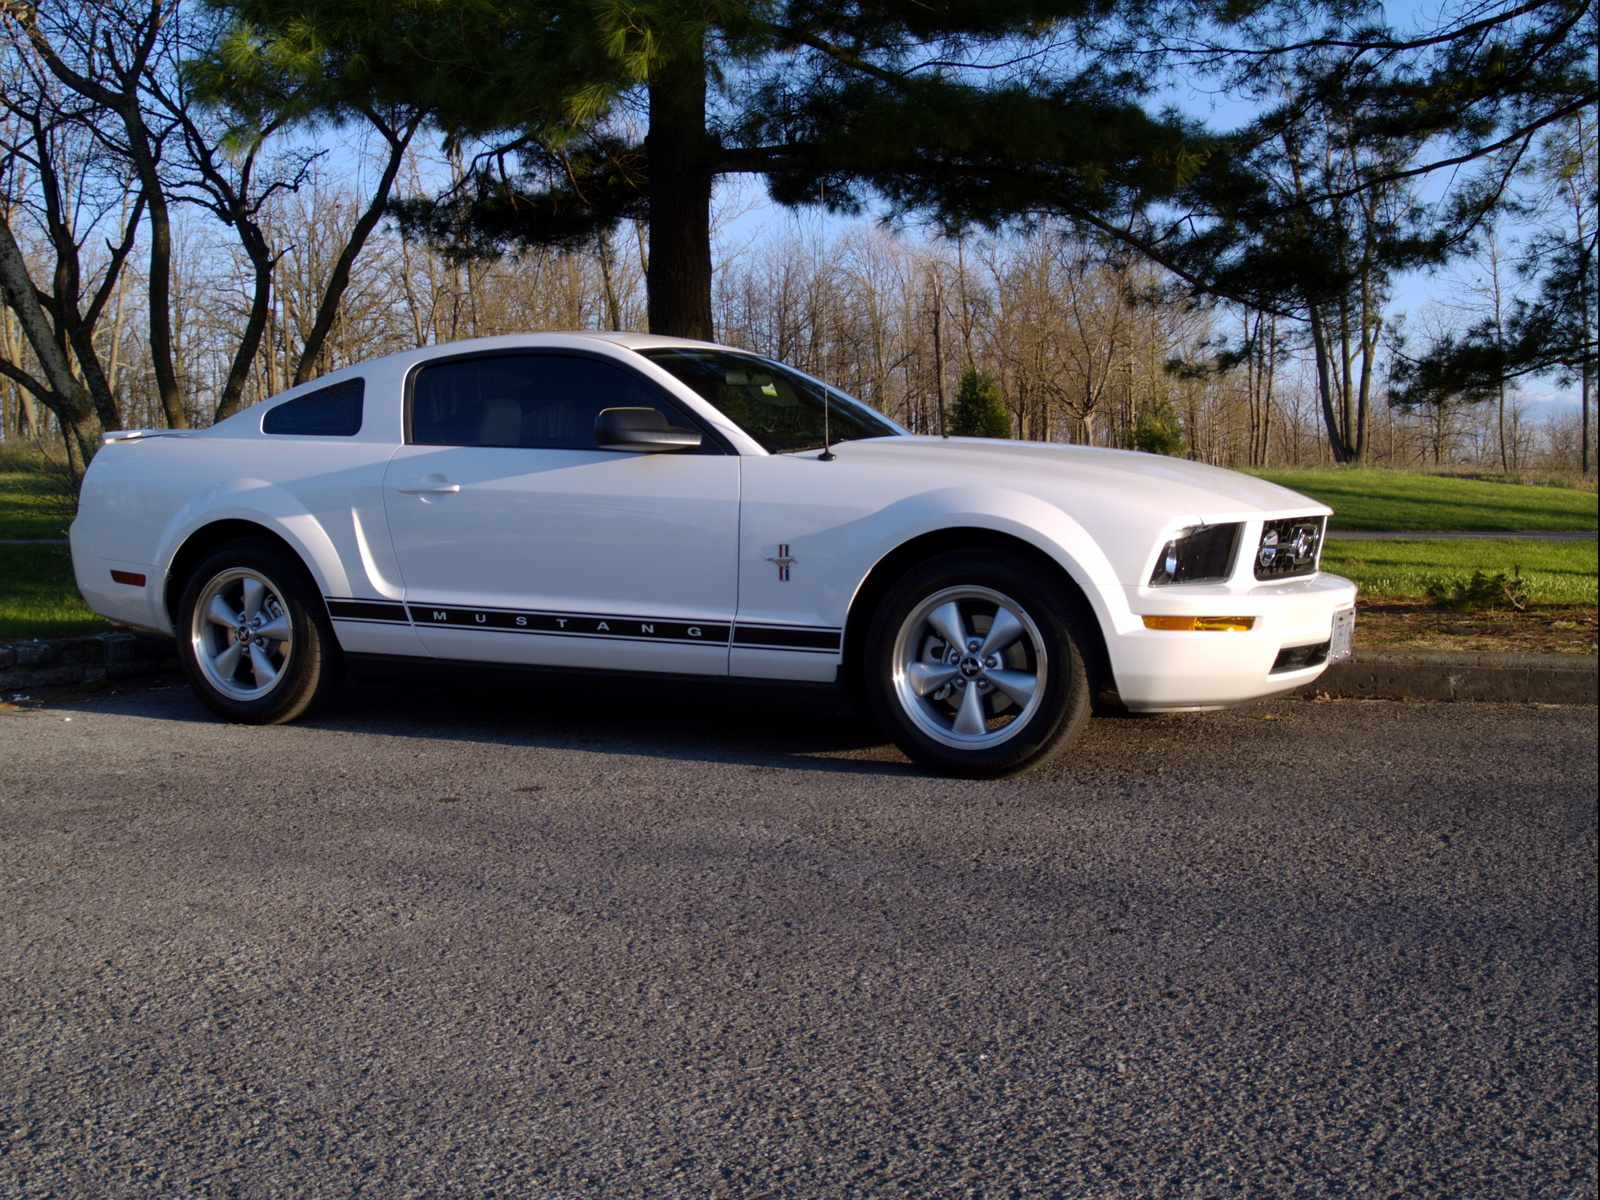 Picture of 2007 Ford Mustang V6 Premium